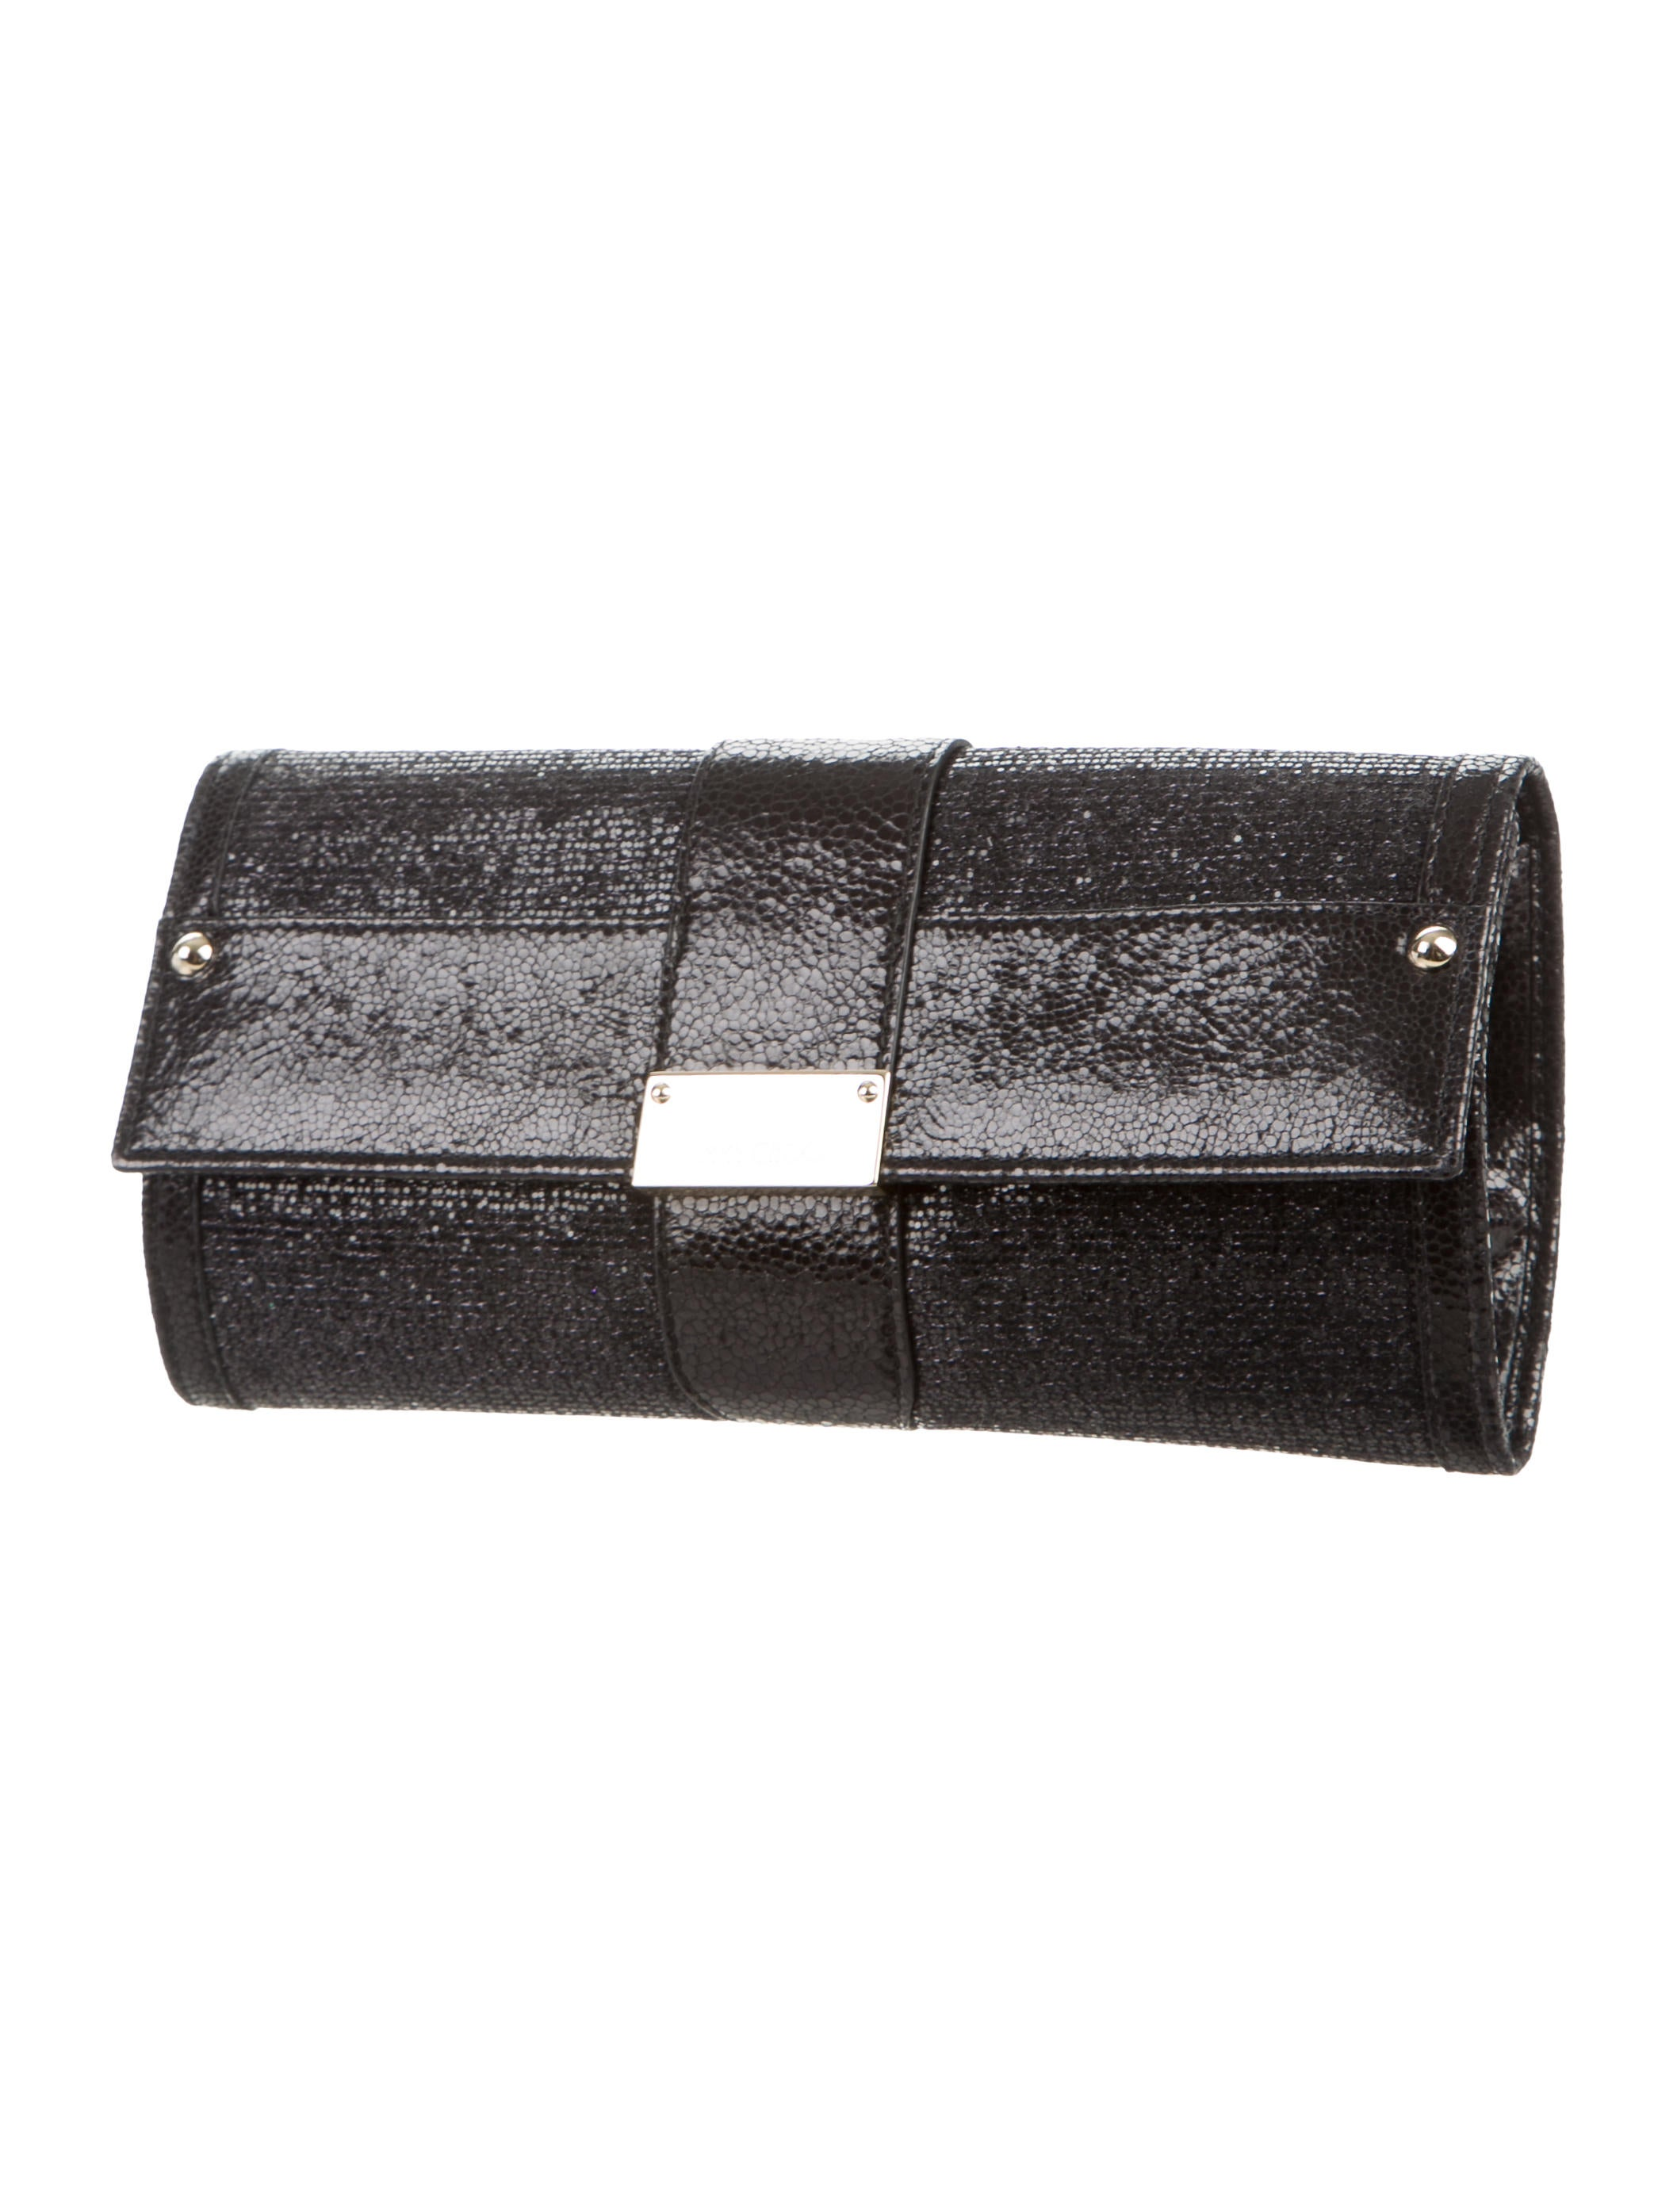 jimmy choo sequin evening clutch handbags jim53912 the realreal. Black Bedroom Furniture Sets. Home Design Ideas